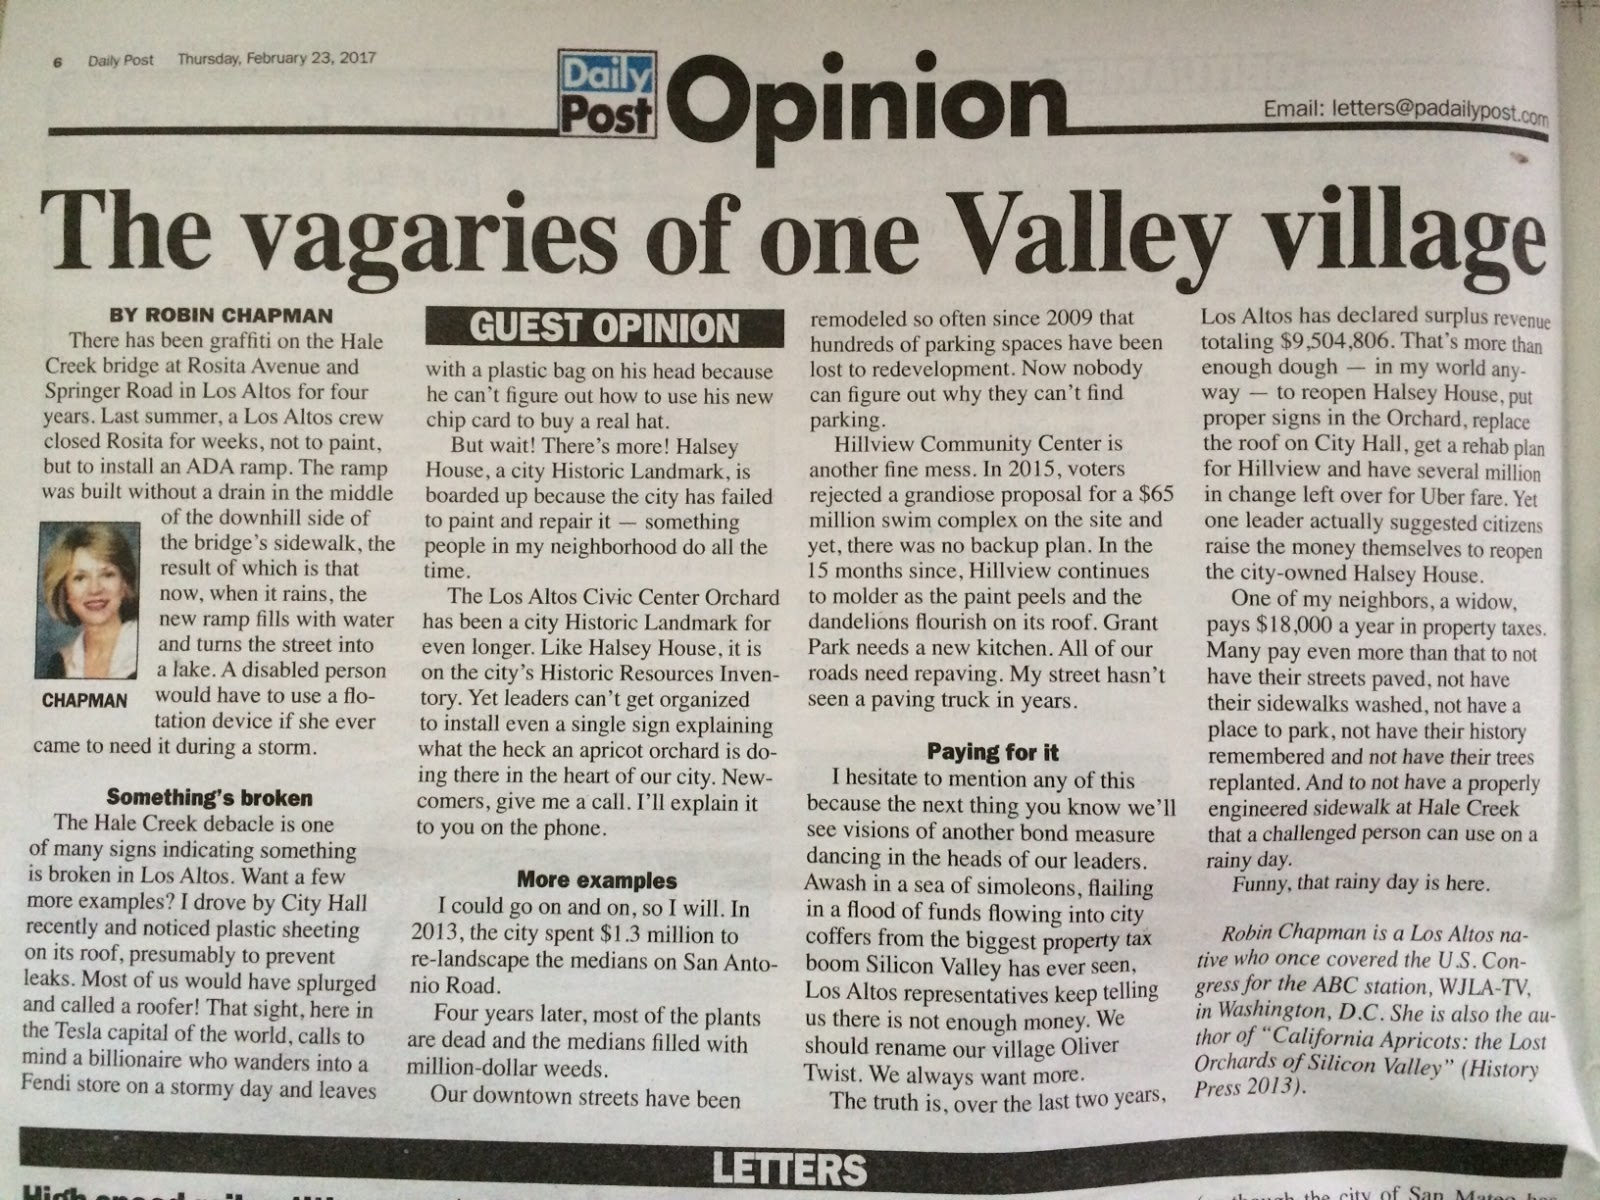 Robin Chapman News The Vagaries Of One Valley Village